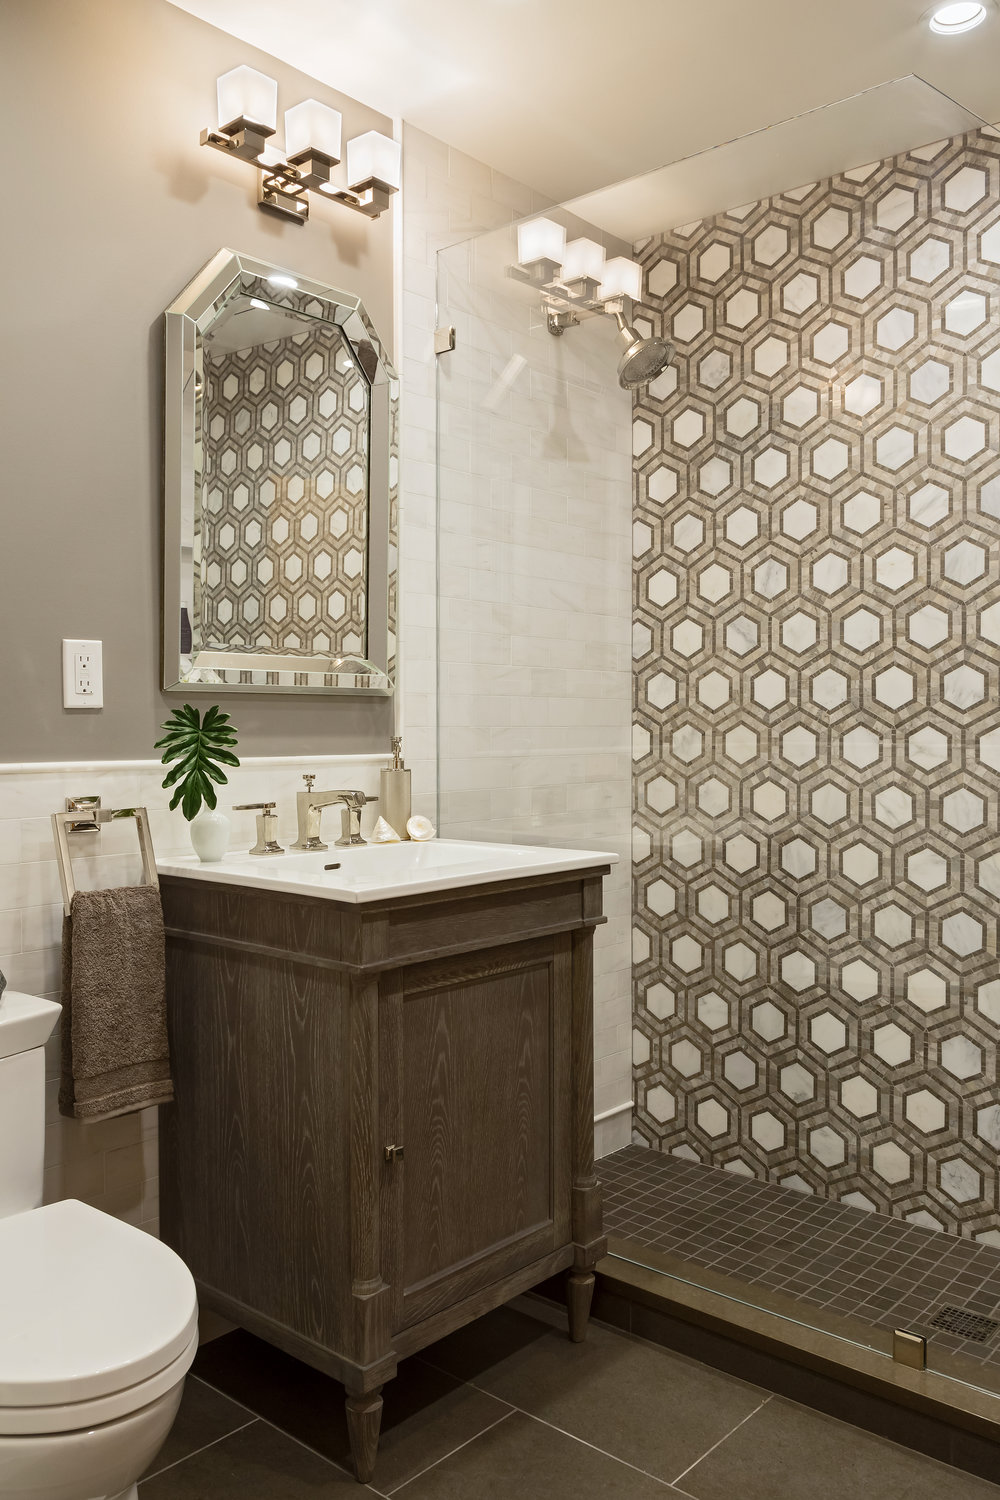 Small bathroom with geometrically designed tiled wall